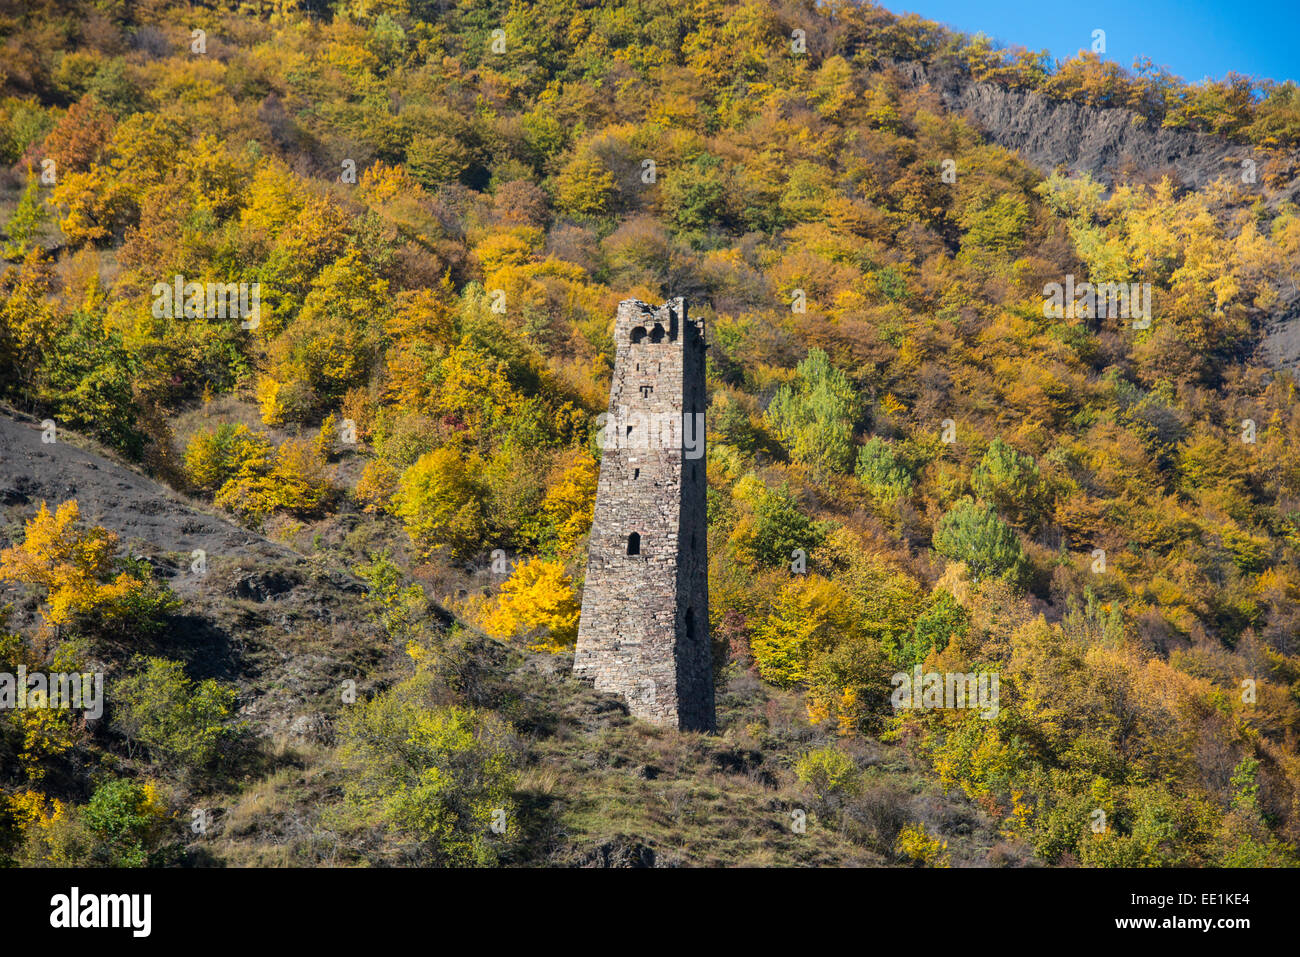 Chechen watchtower in the Chechen Mountains near Itum Kale, Chechnya, Caucasus, Russia, Europe - Stock Image